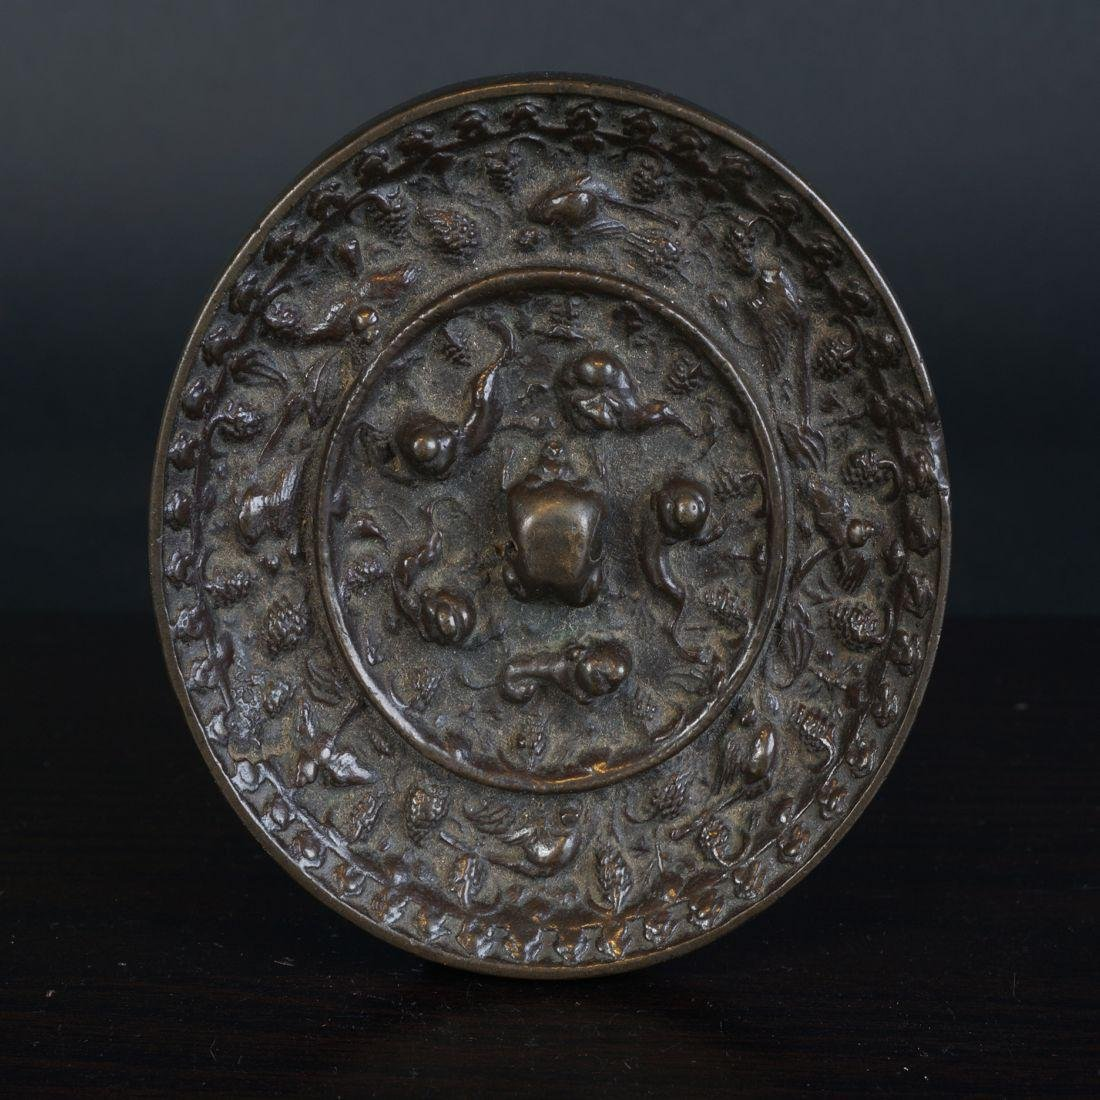 Very special antique Chinese bronze Miror Tang Dynasty - 2